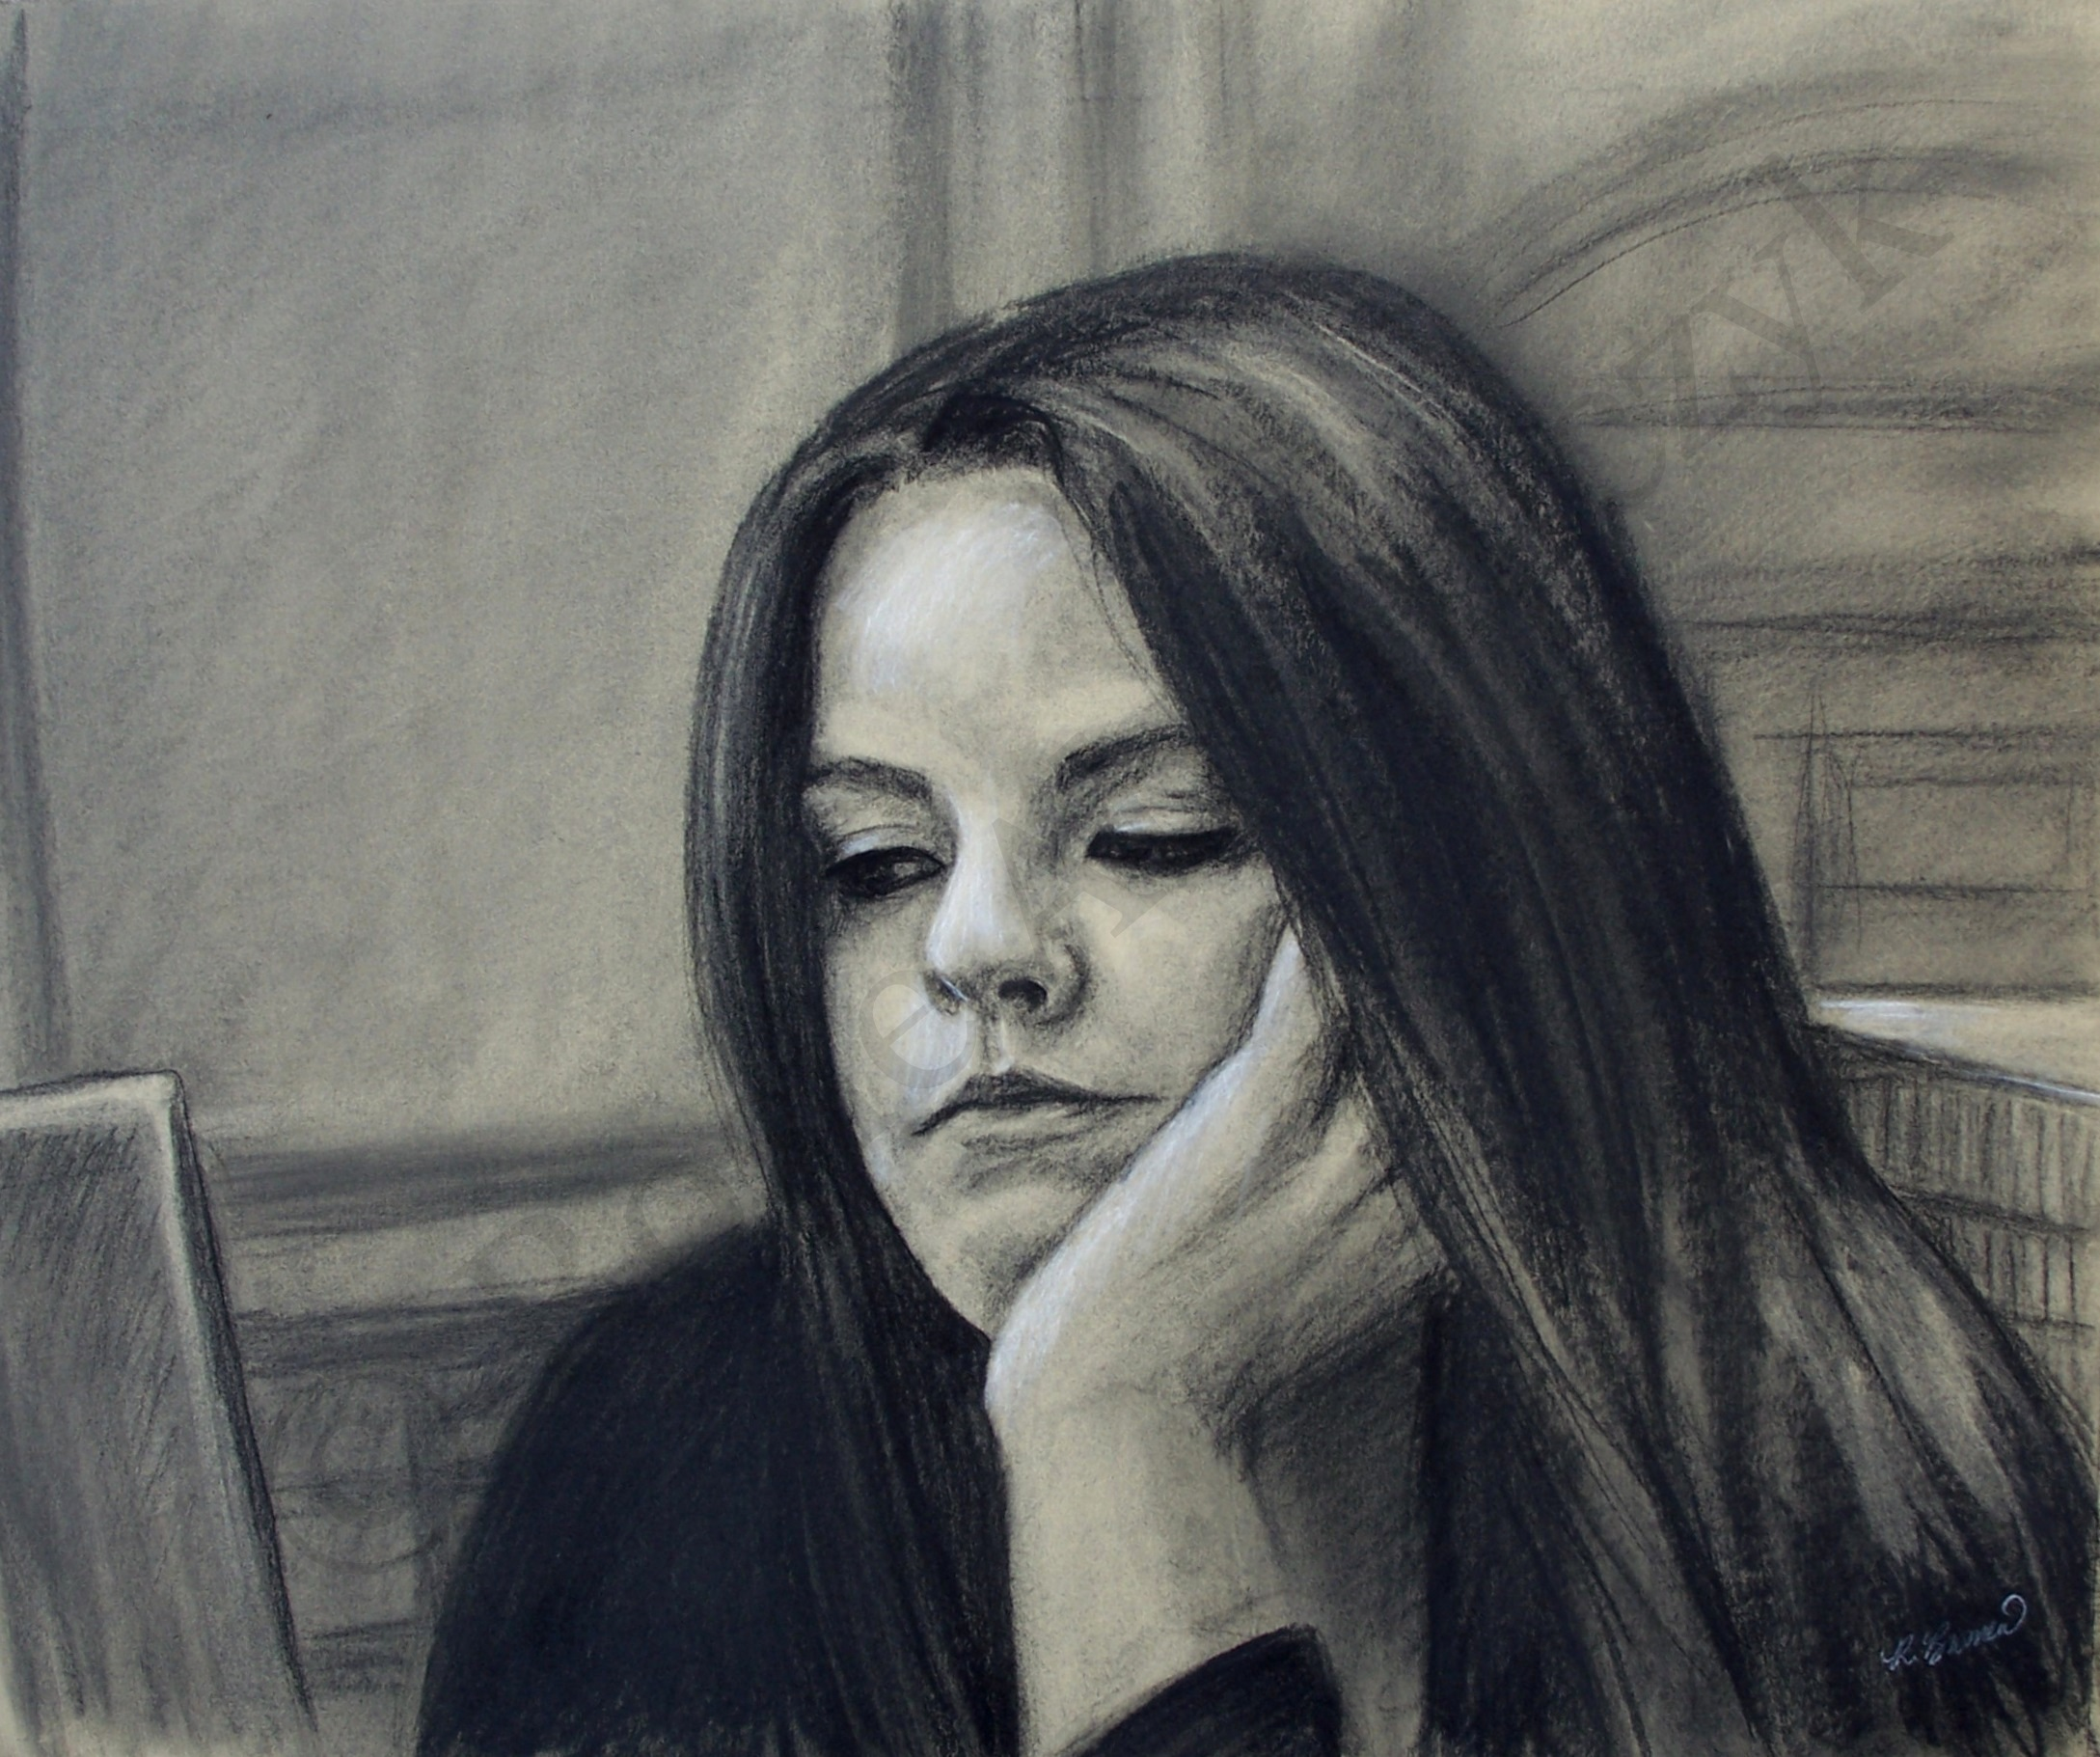 Kim at the Library, by Rosie Bromeier-Abramczyk, Charcoal, 2008